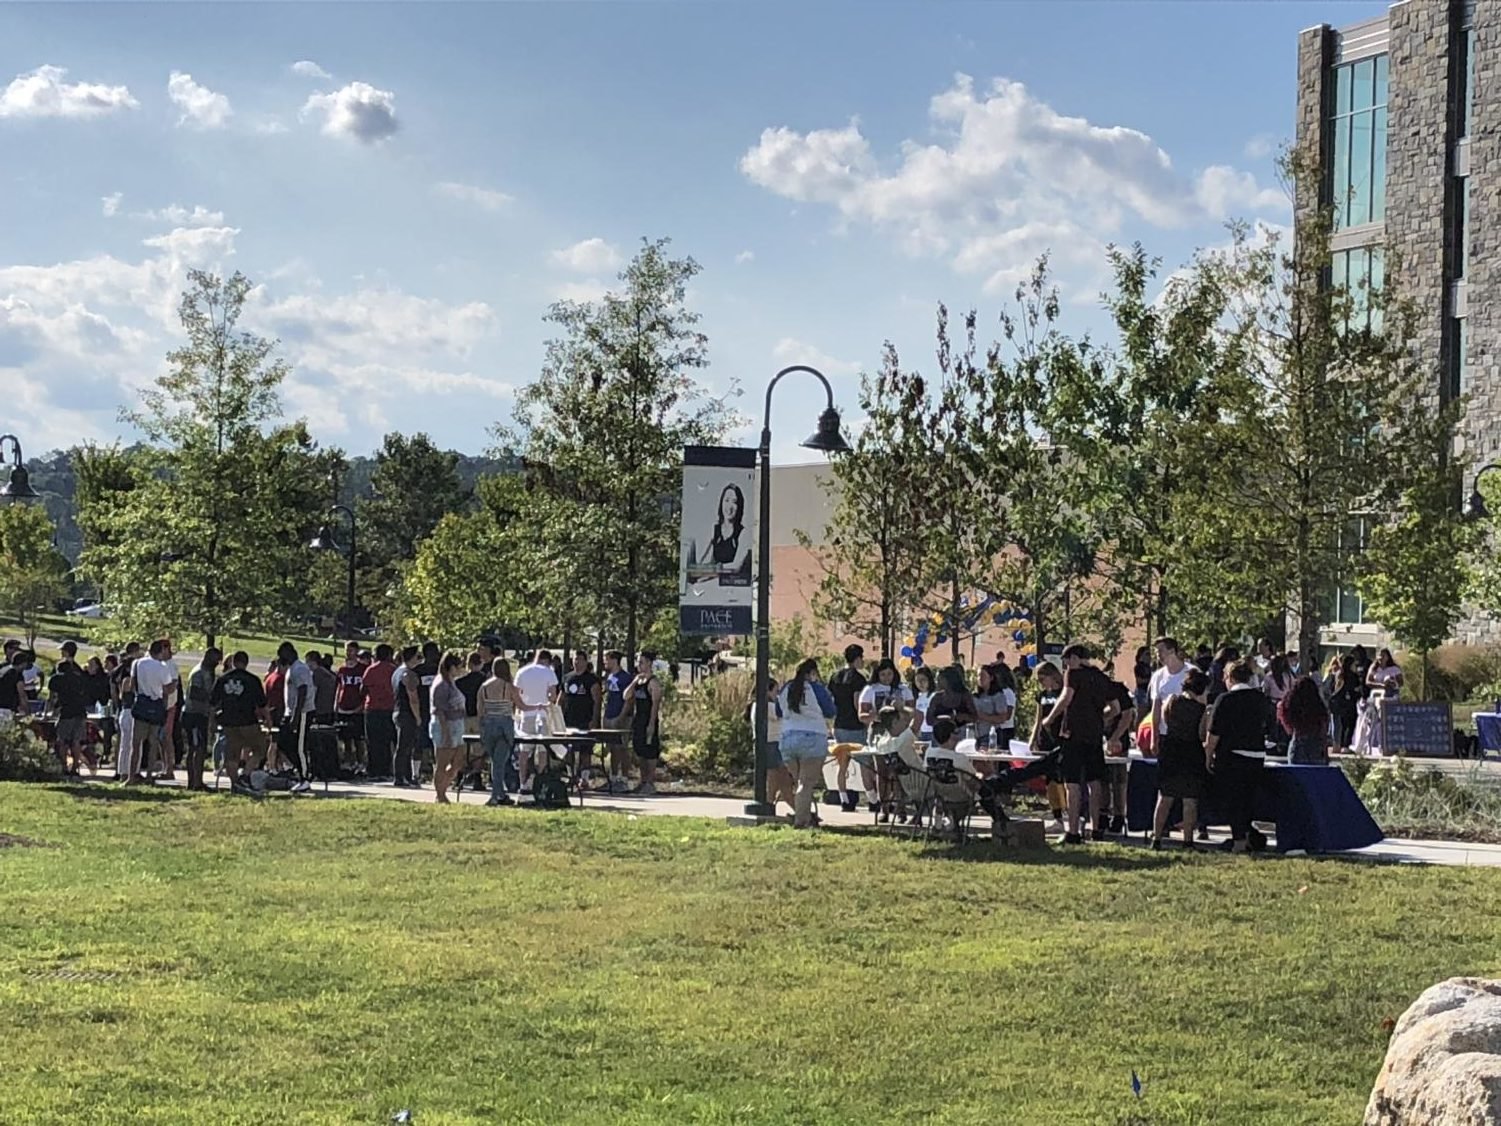 Freshmen enjoy the campus involvement fair right after Tuesday's convocation ceremony.